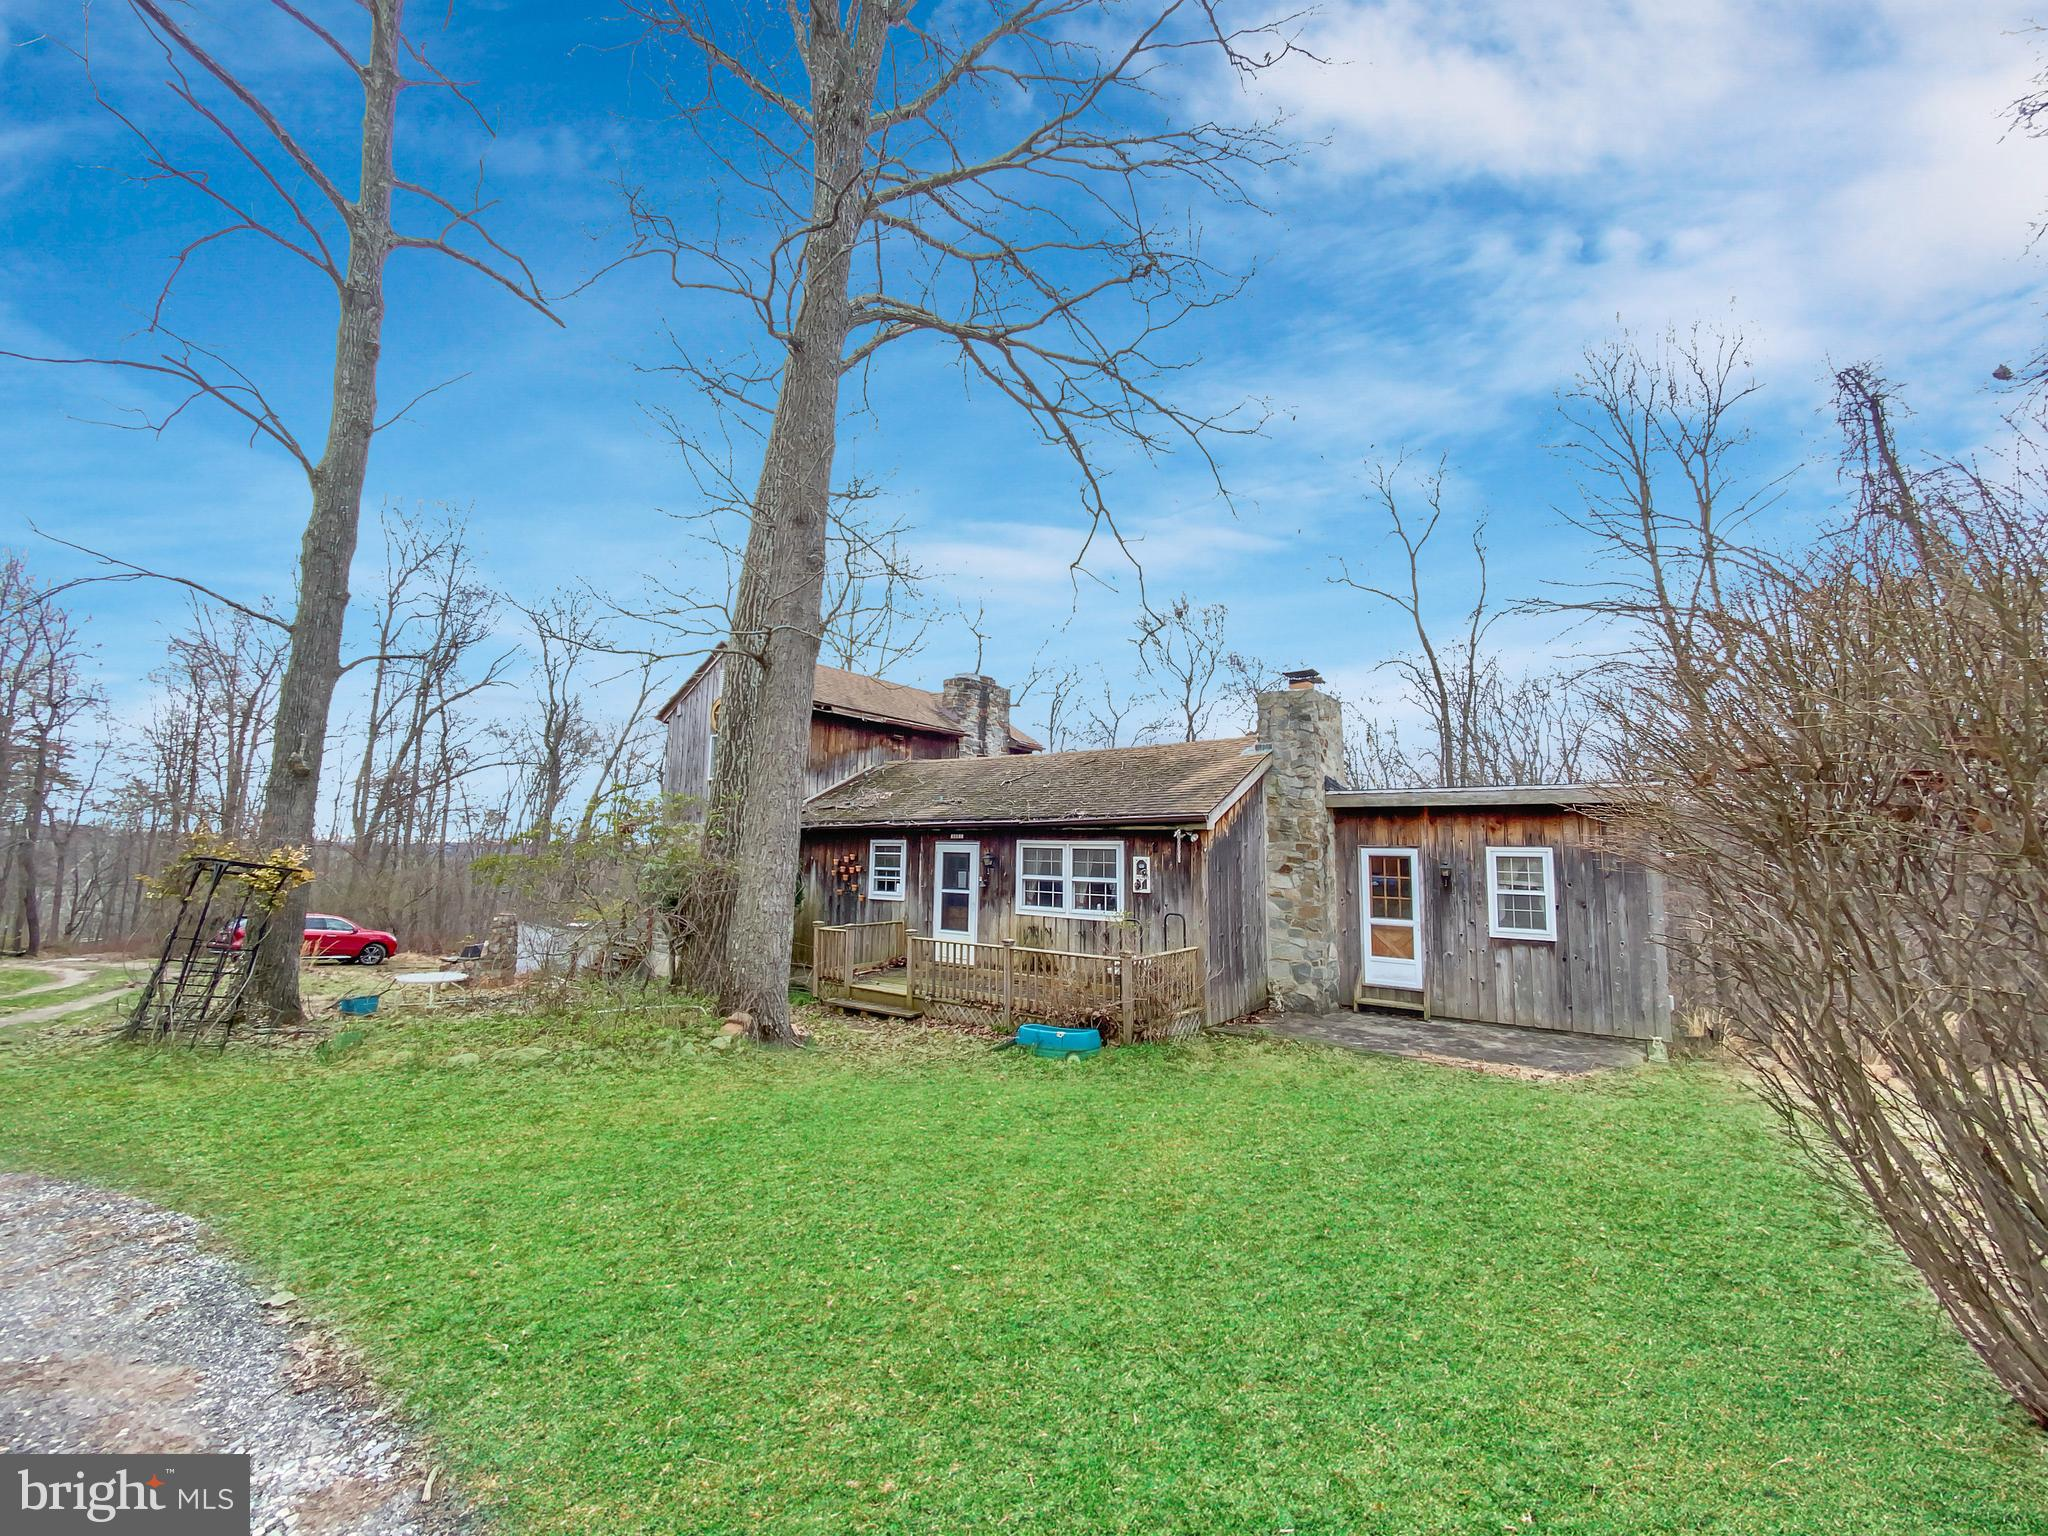 Beautiful views from the rear porches of your own steam! Home in need of renovation or tear down and build your dream home on a private road overlooking  a stream.  Bring your contractor and imagination. All offers considered.